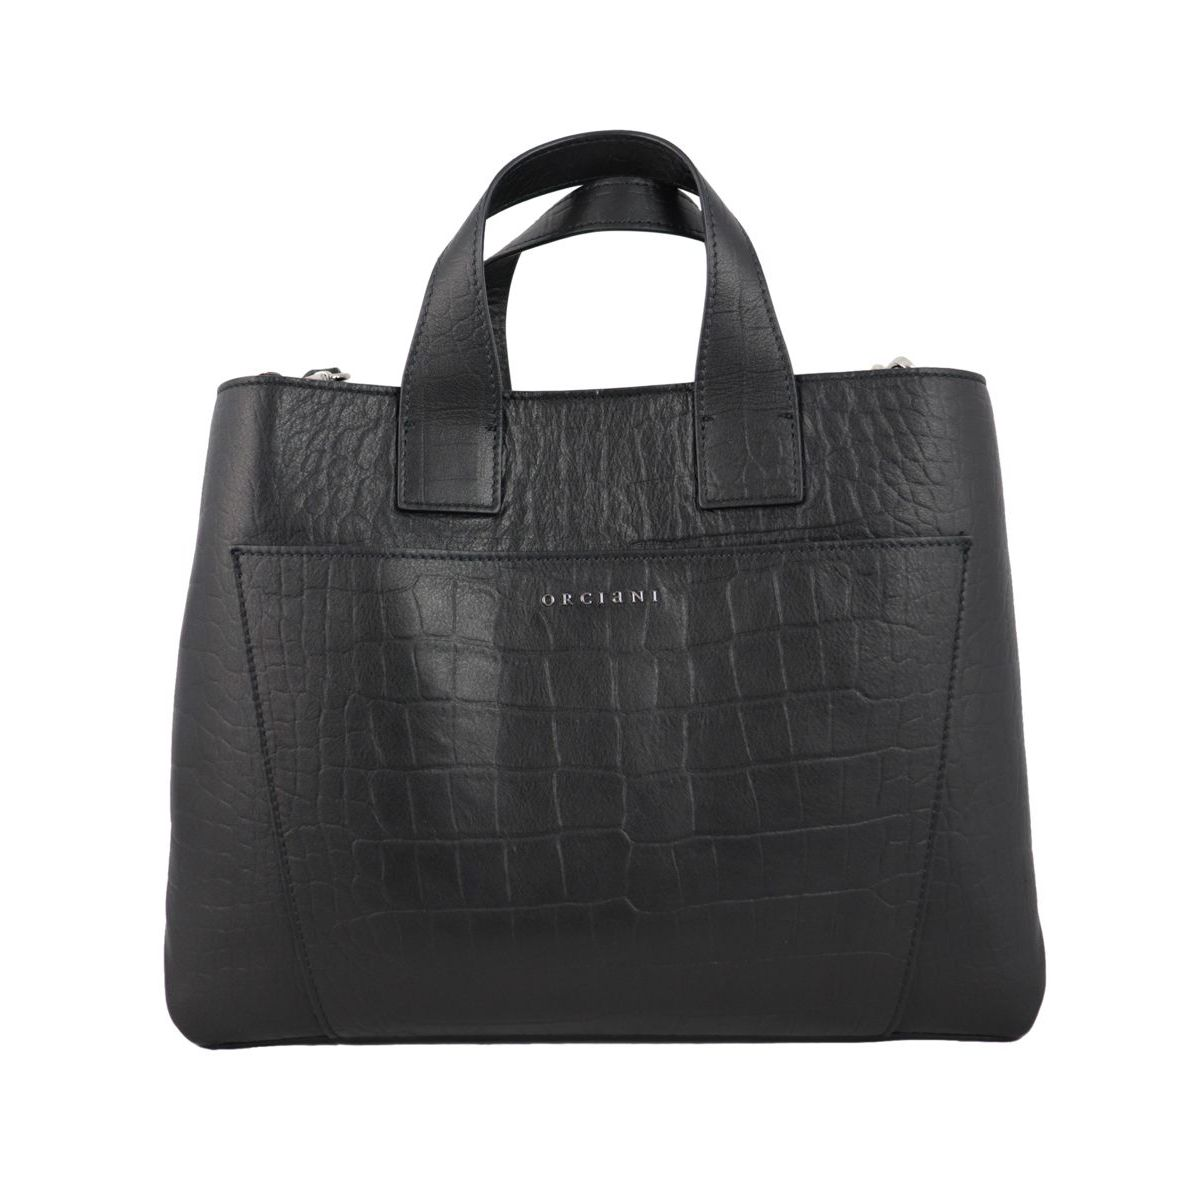 NORA bag in KINDU leather Black Orciani